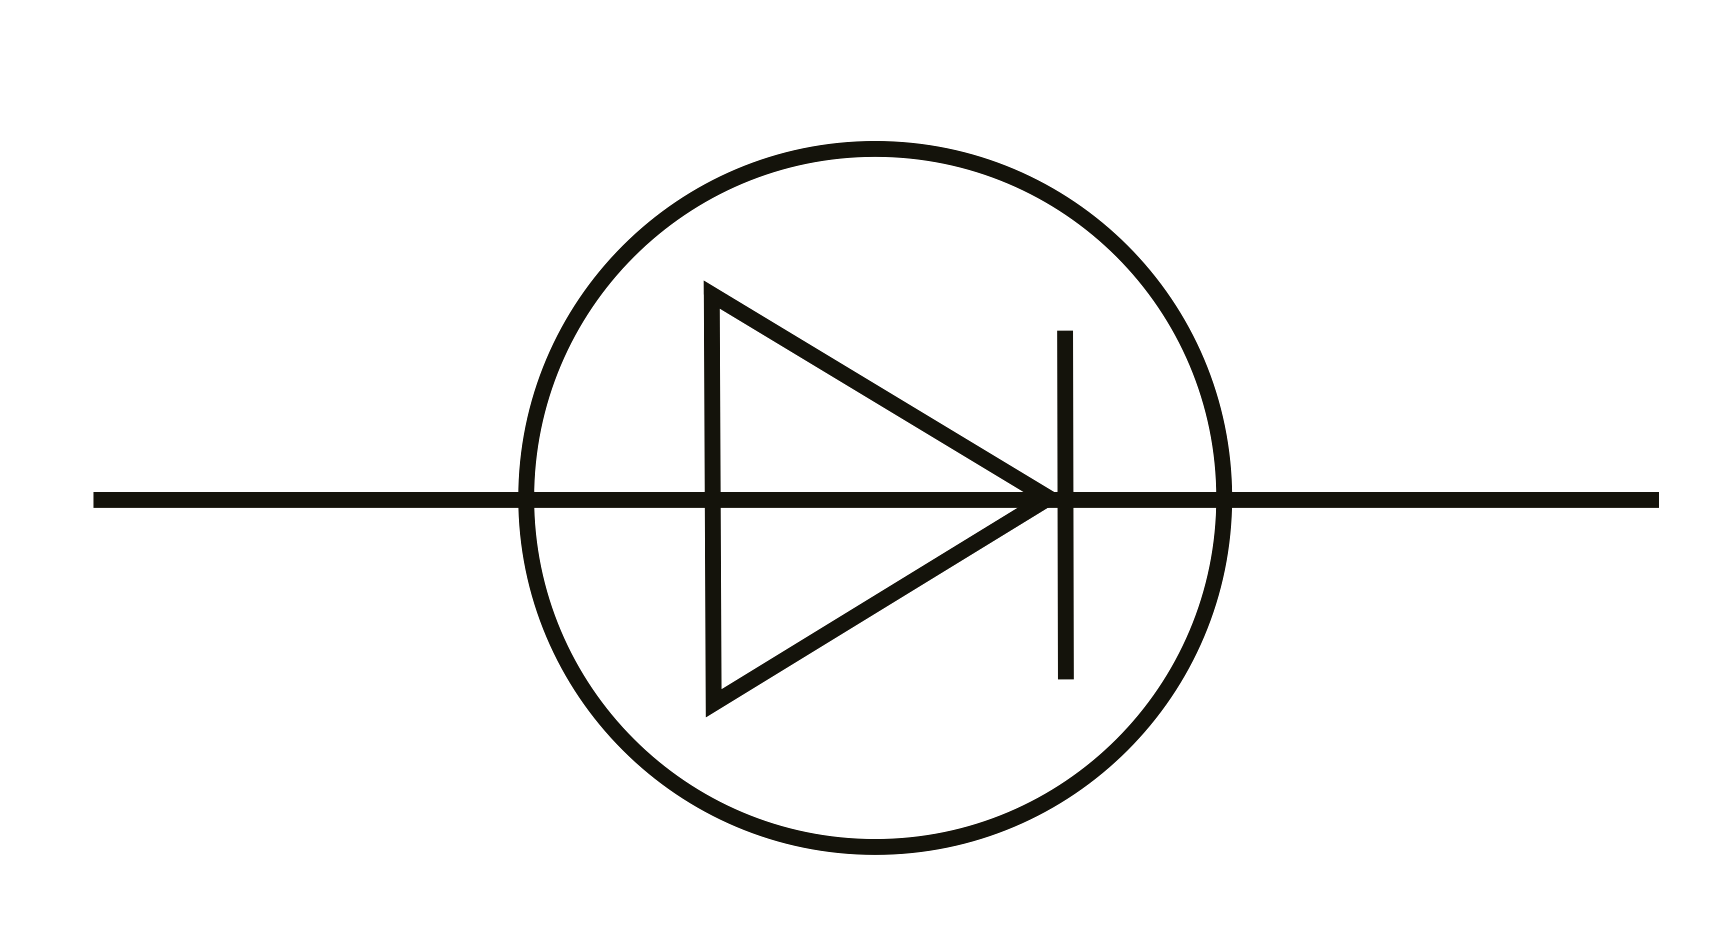 Schematic Symbol Of An Ideal Diode.